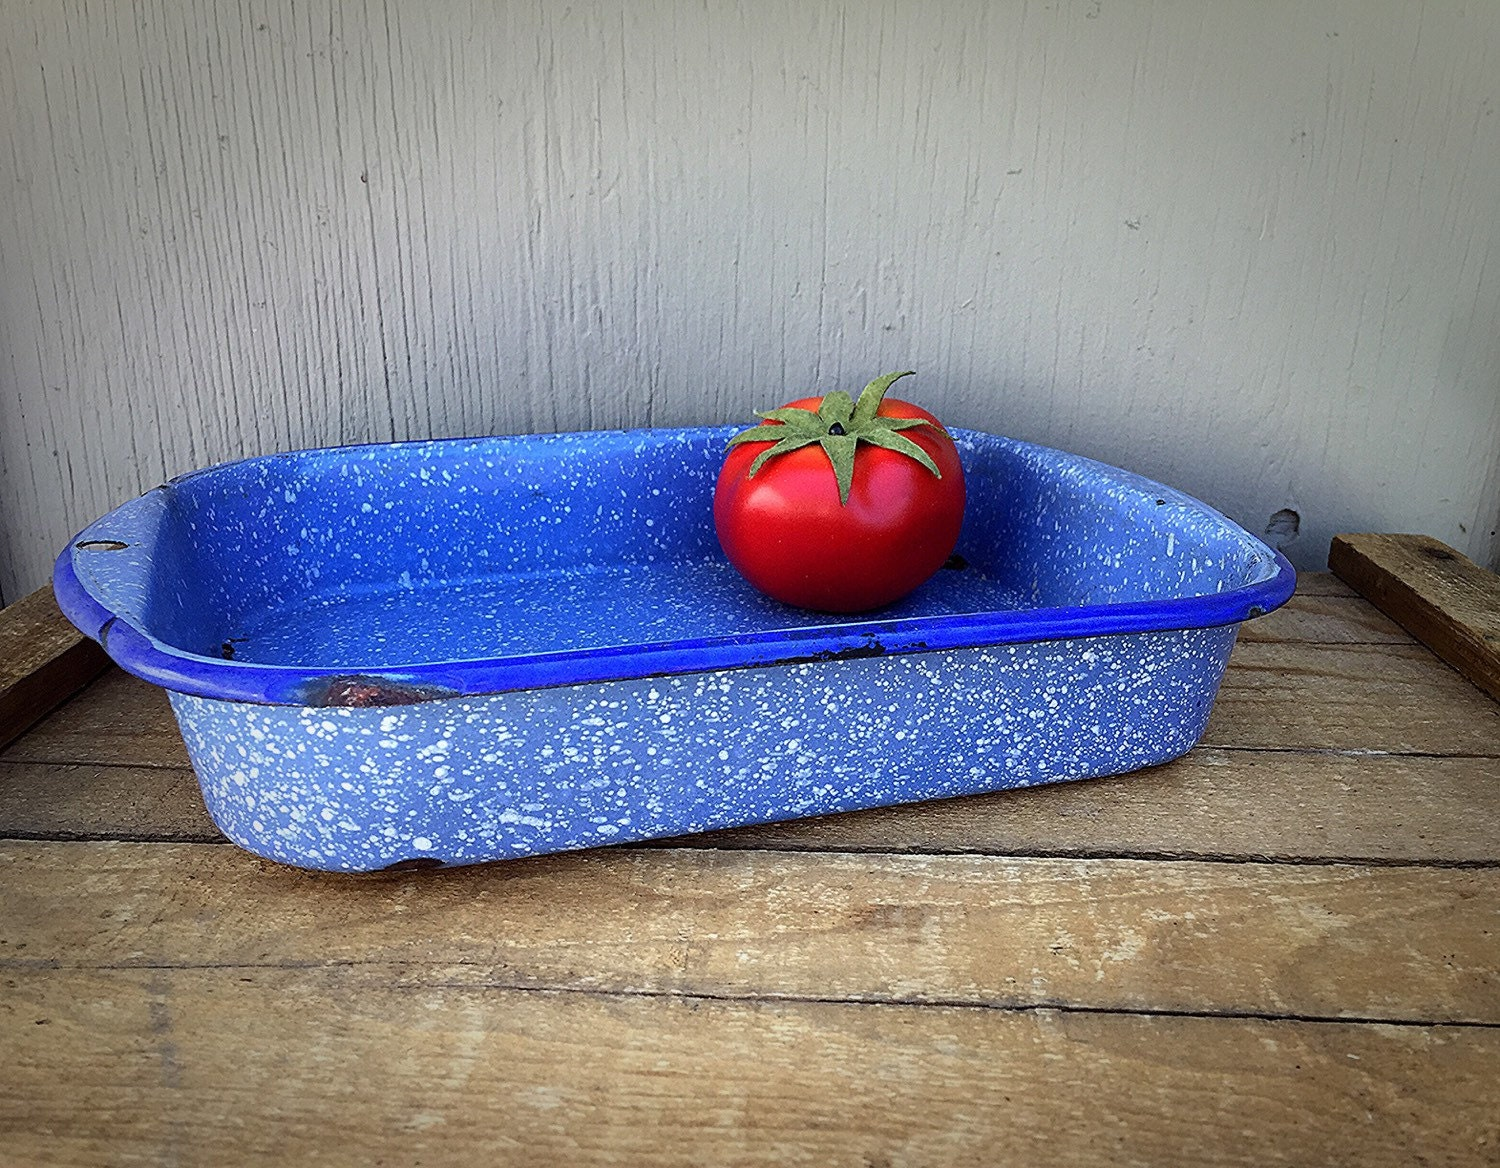 Enamelware Baking Pan Light Blue And By Godsavestrawberryjam